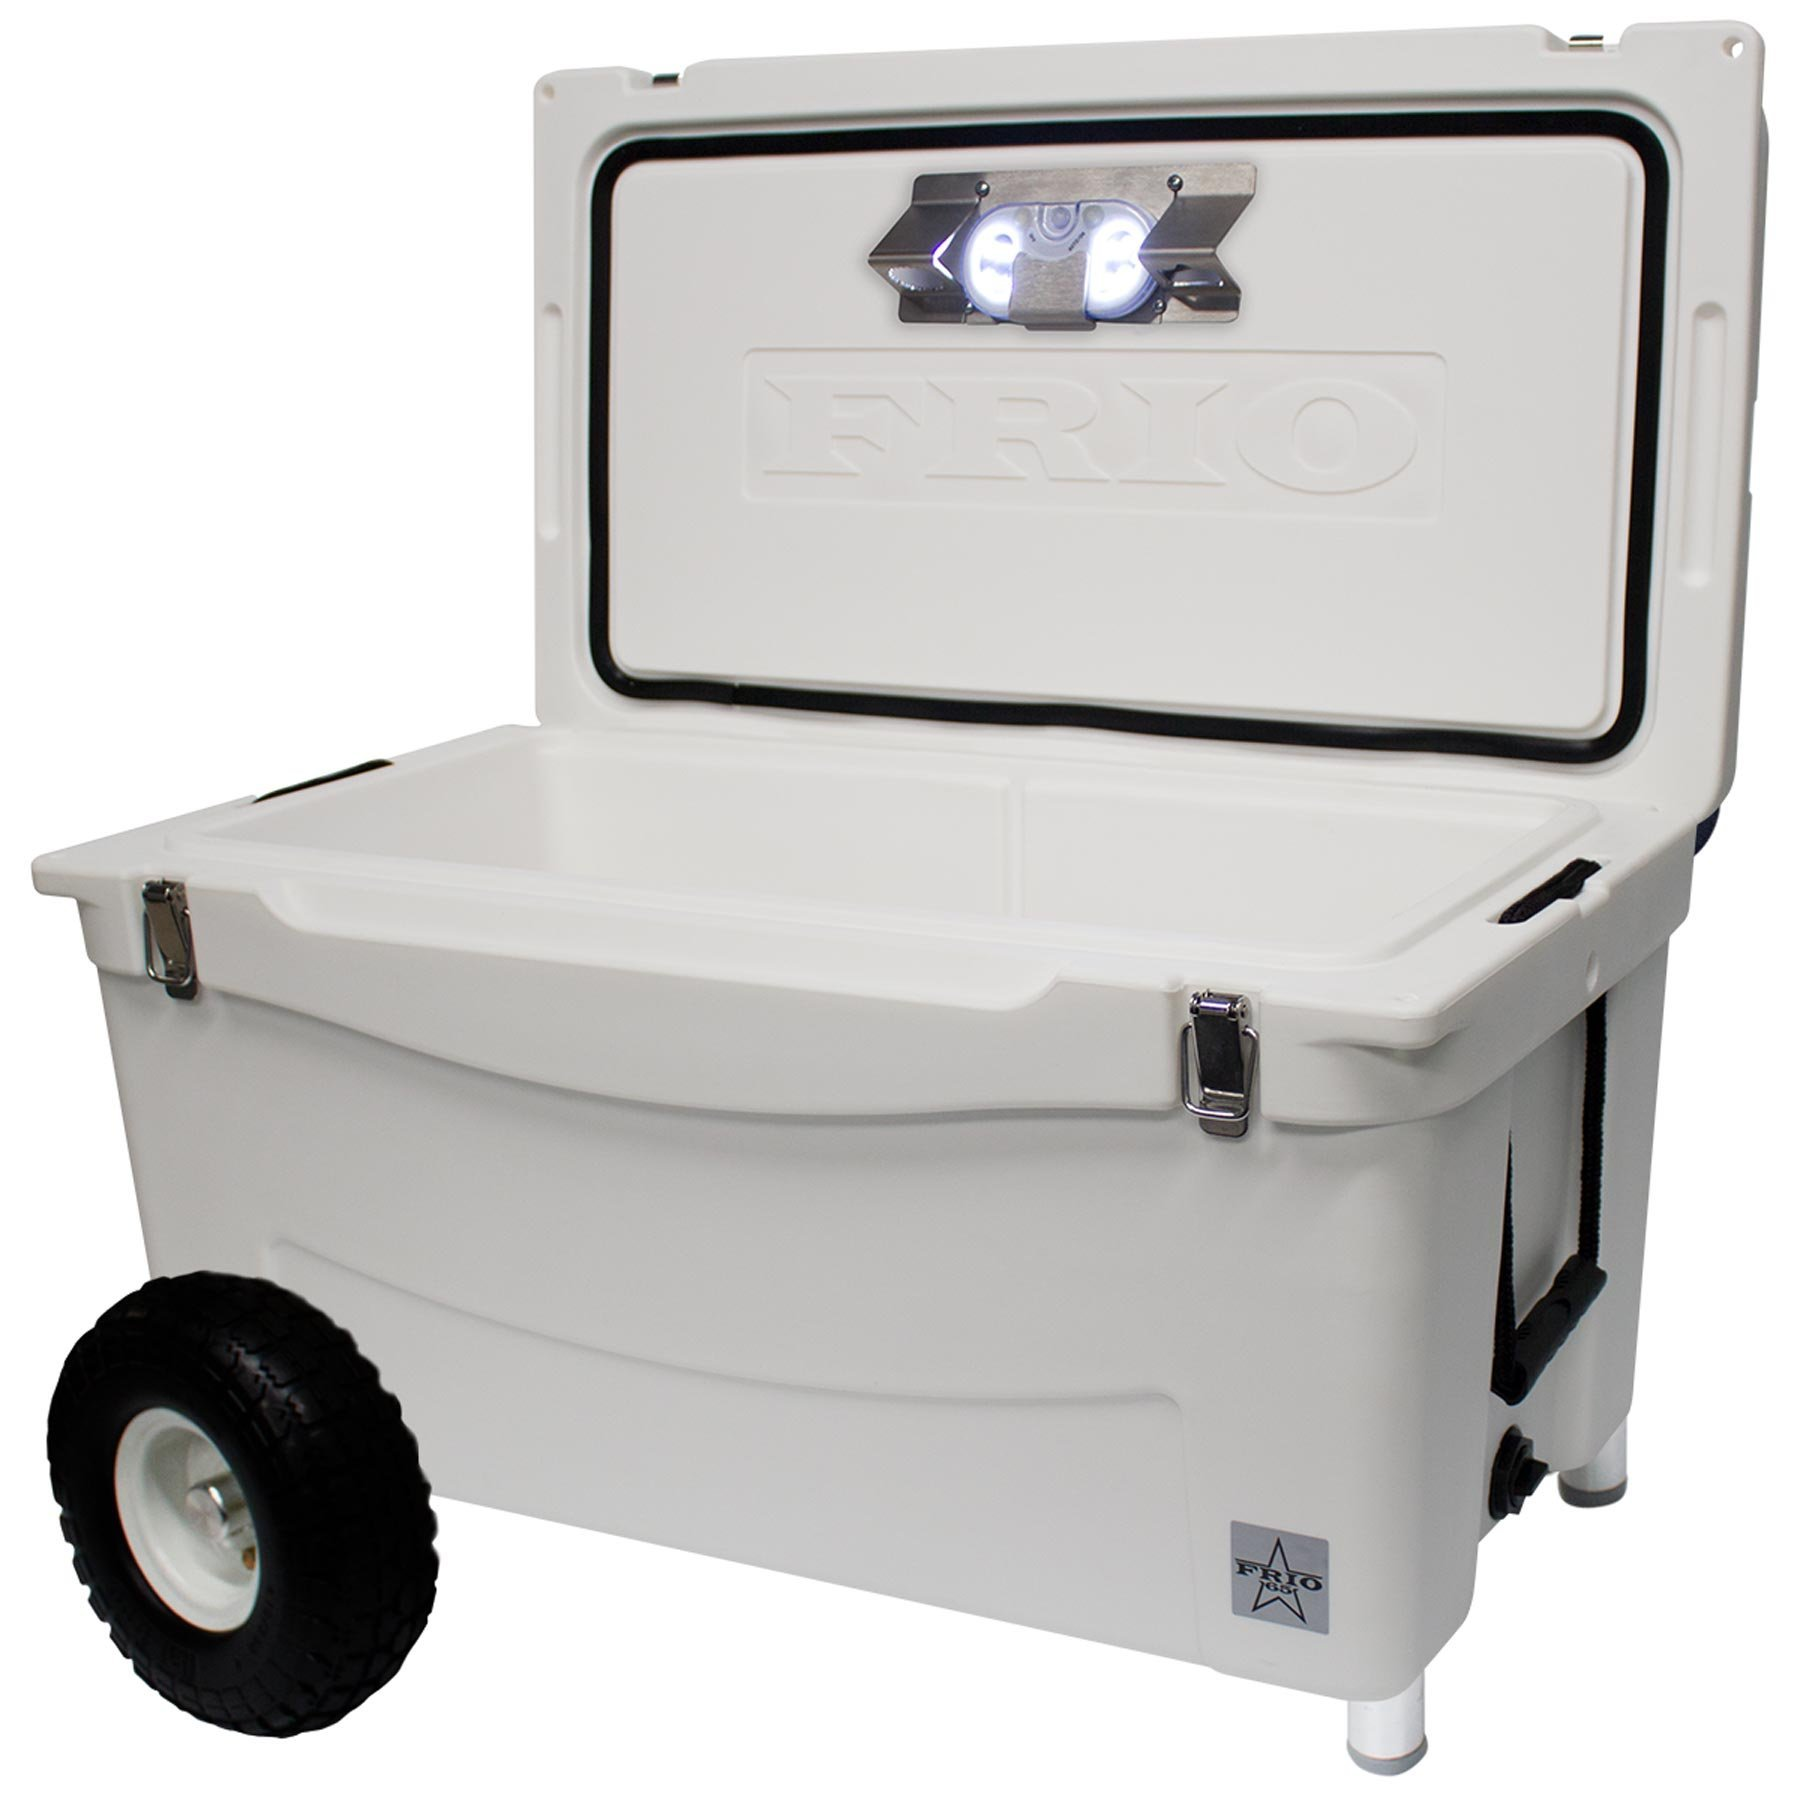 Frio Ice Chests Extreme Wheeled White Hard Side with Built-in Motion Sensitive Light Bar with Bottle Openers, 65 quart by Frio Ice Chests